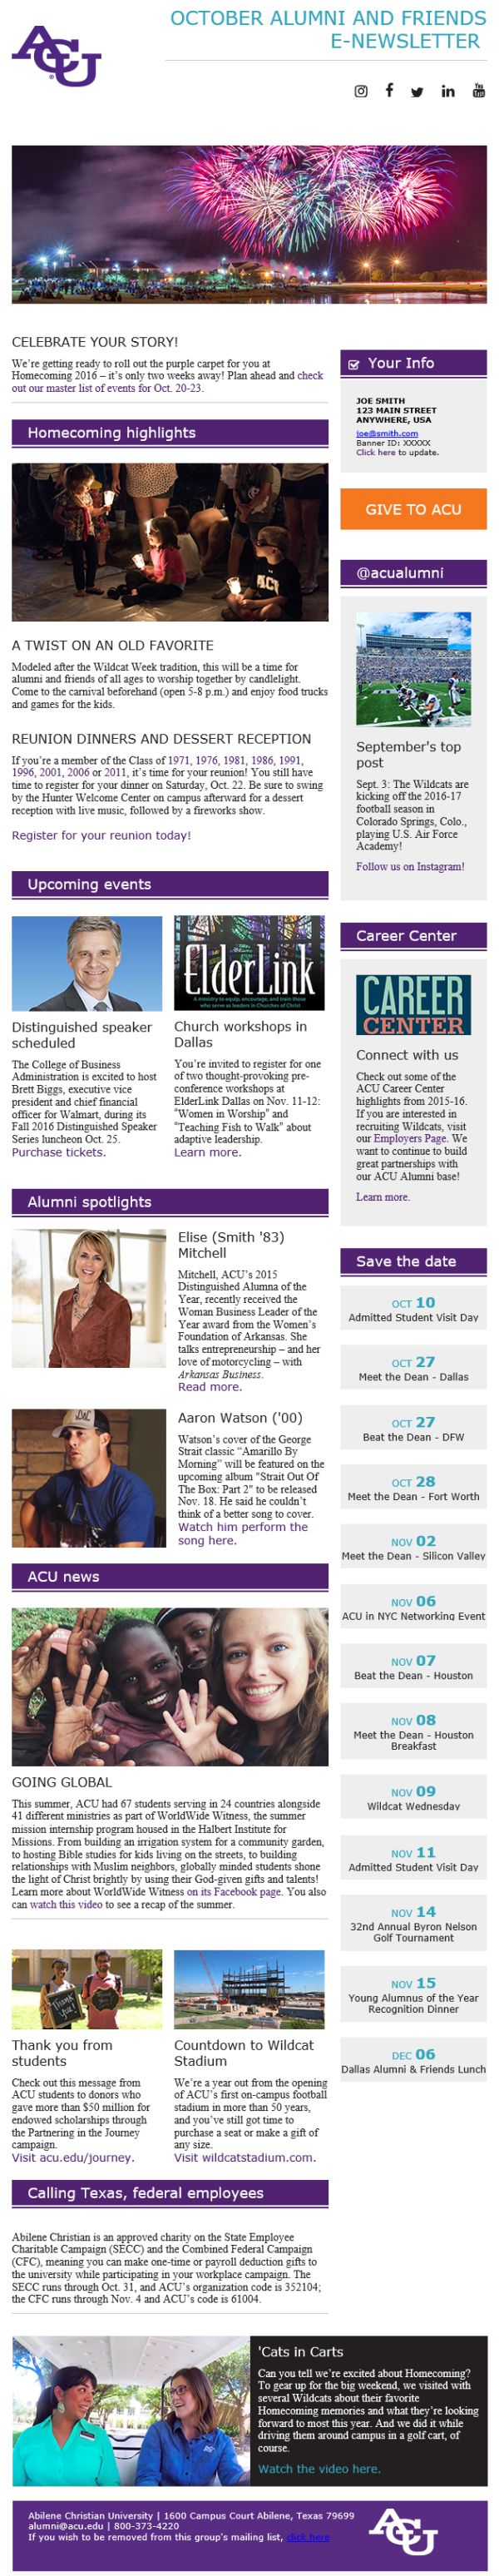 imodules mobile newsletter template abilene christian university